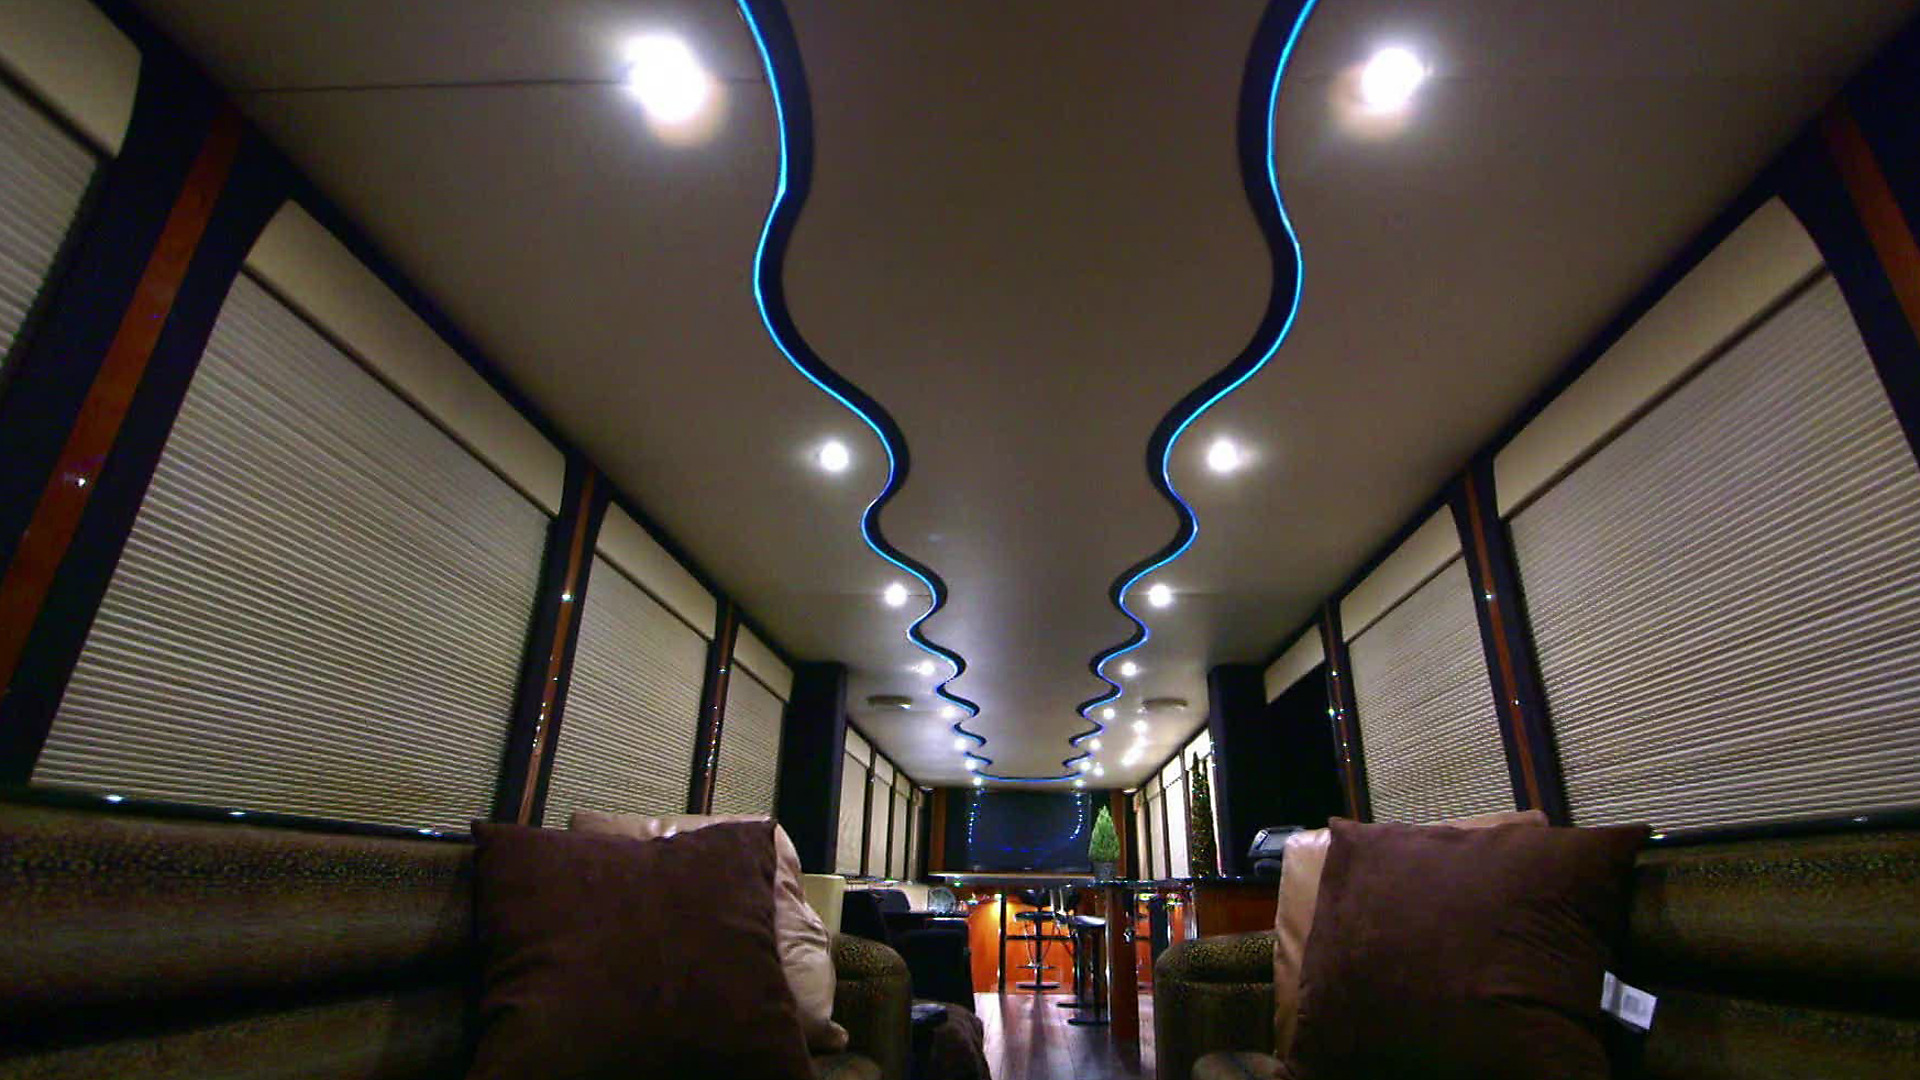 Mariah Carey's RV lounge and dance club.